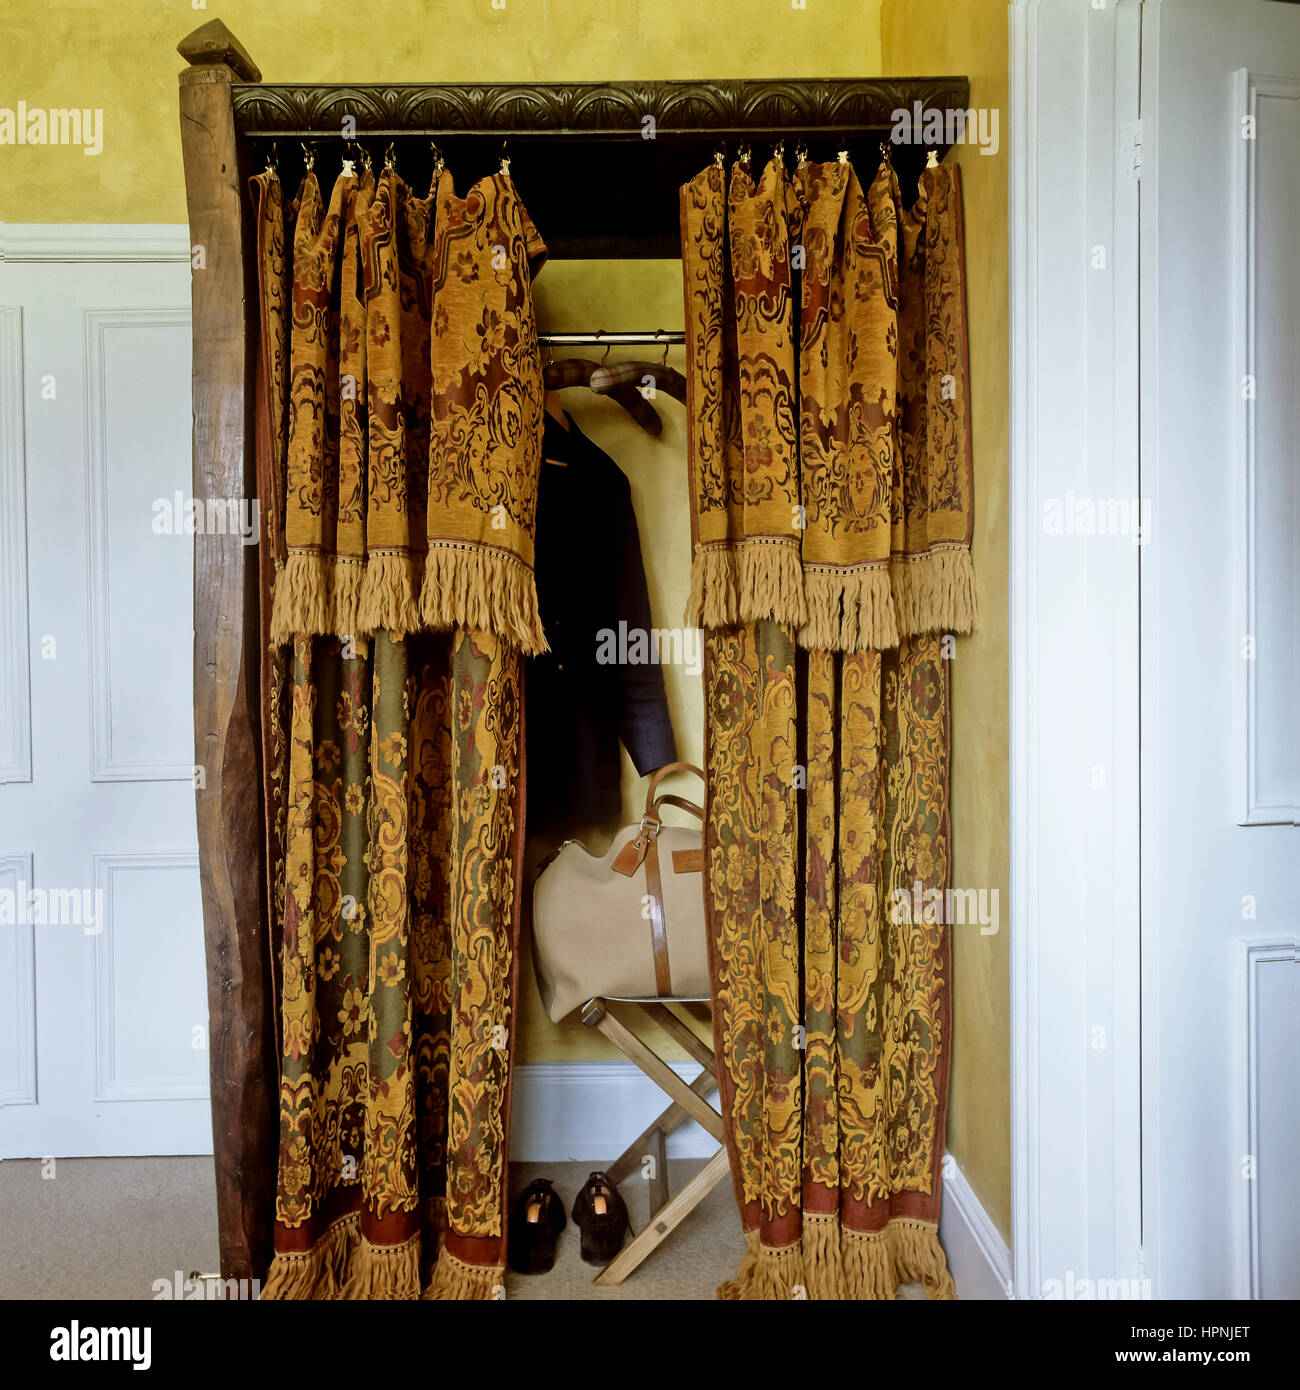 A closet with curtains. - Stock Image